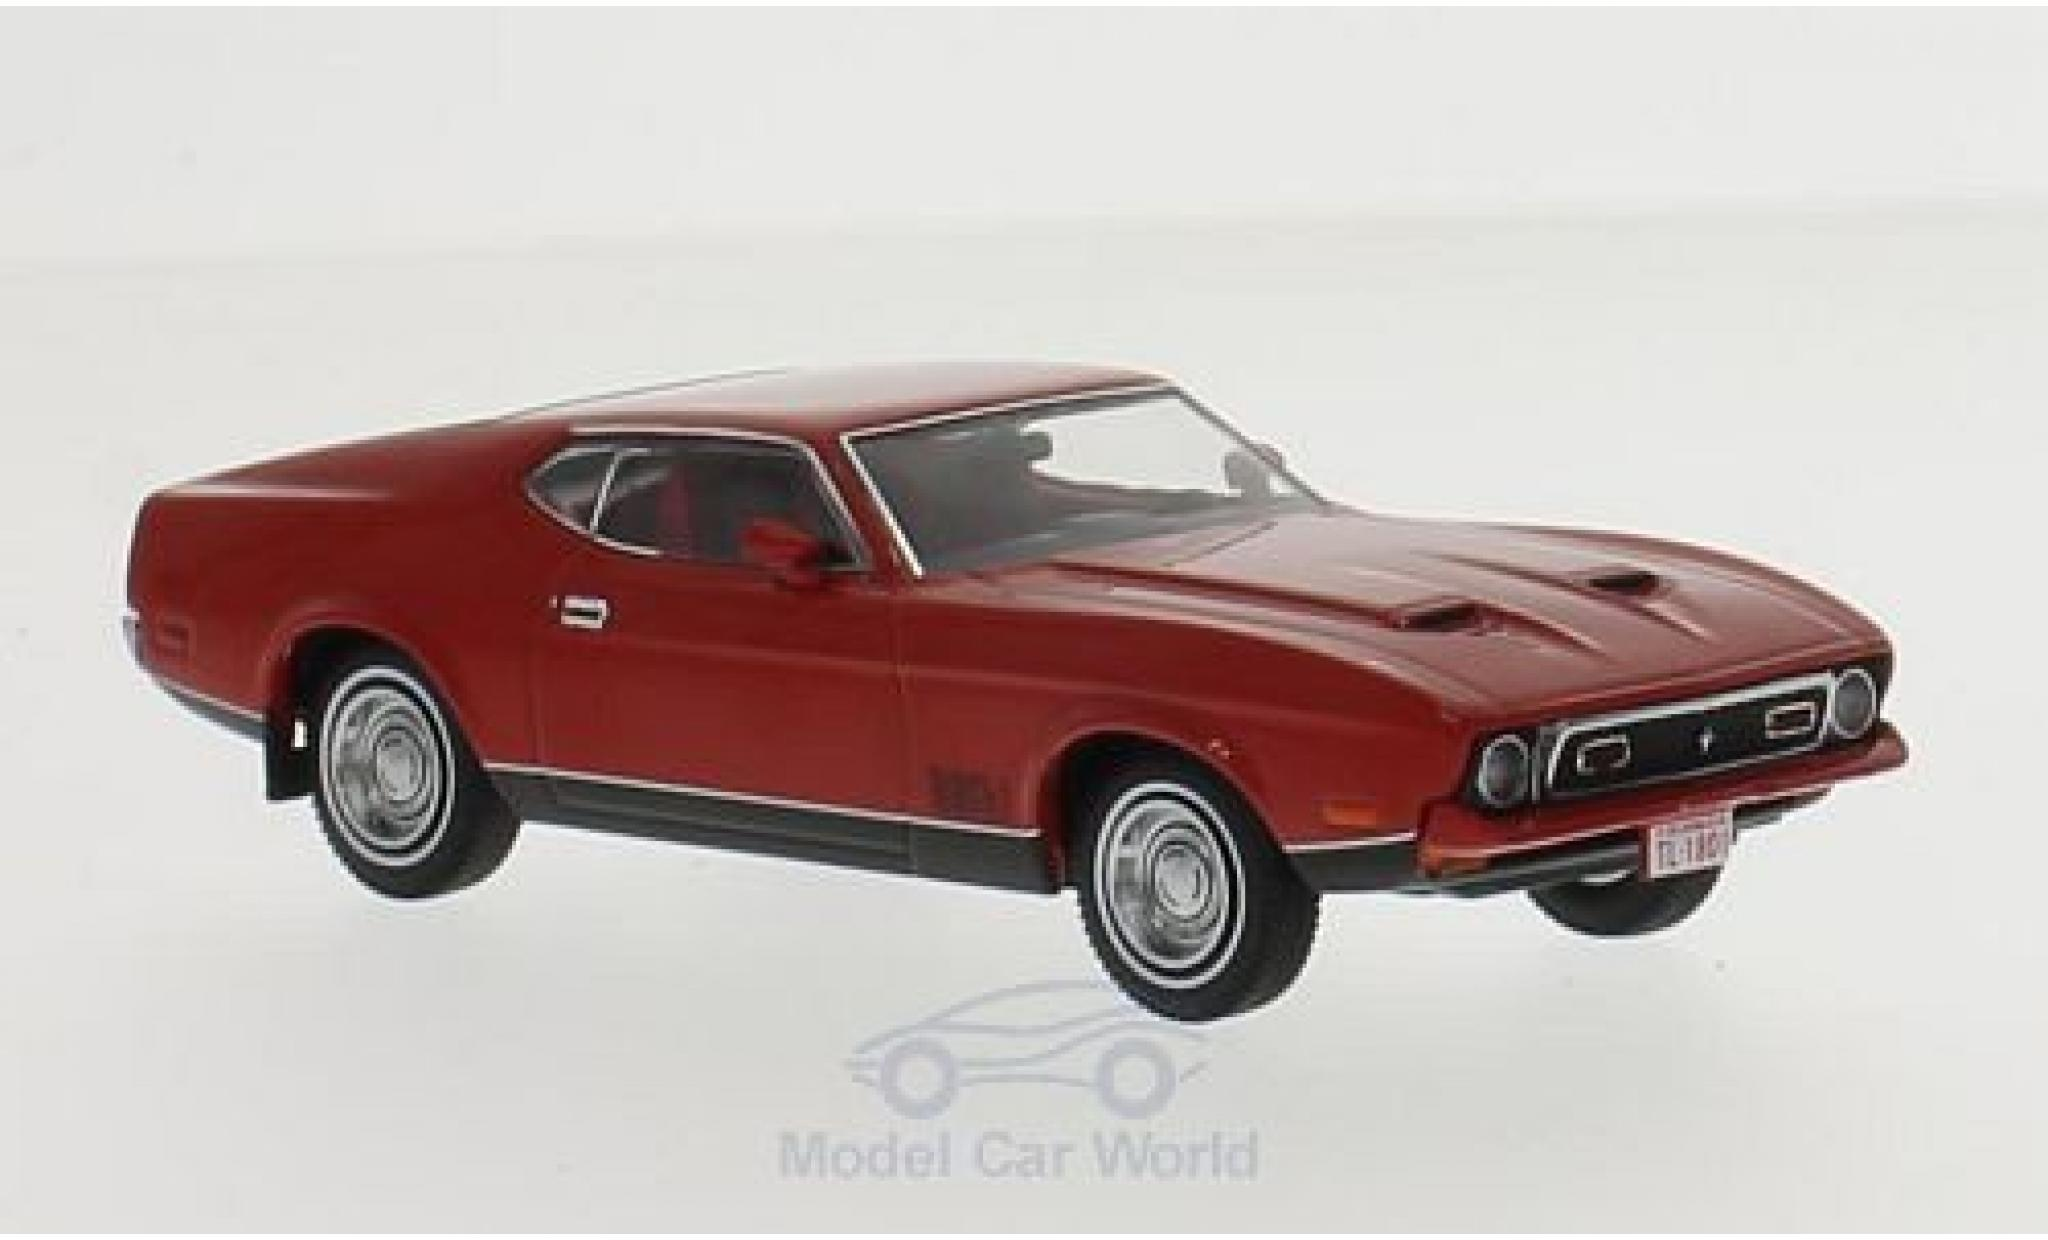 Ford Mustang 1971 1/43 Premium X Mach 1 rouge